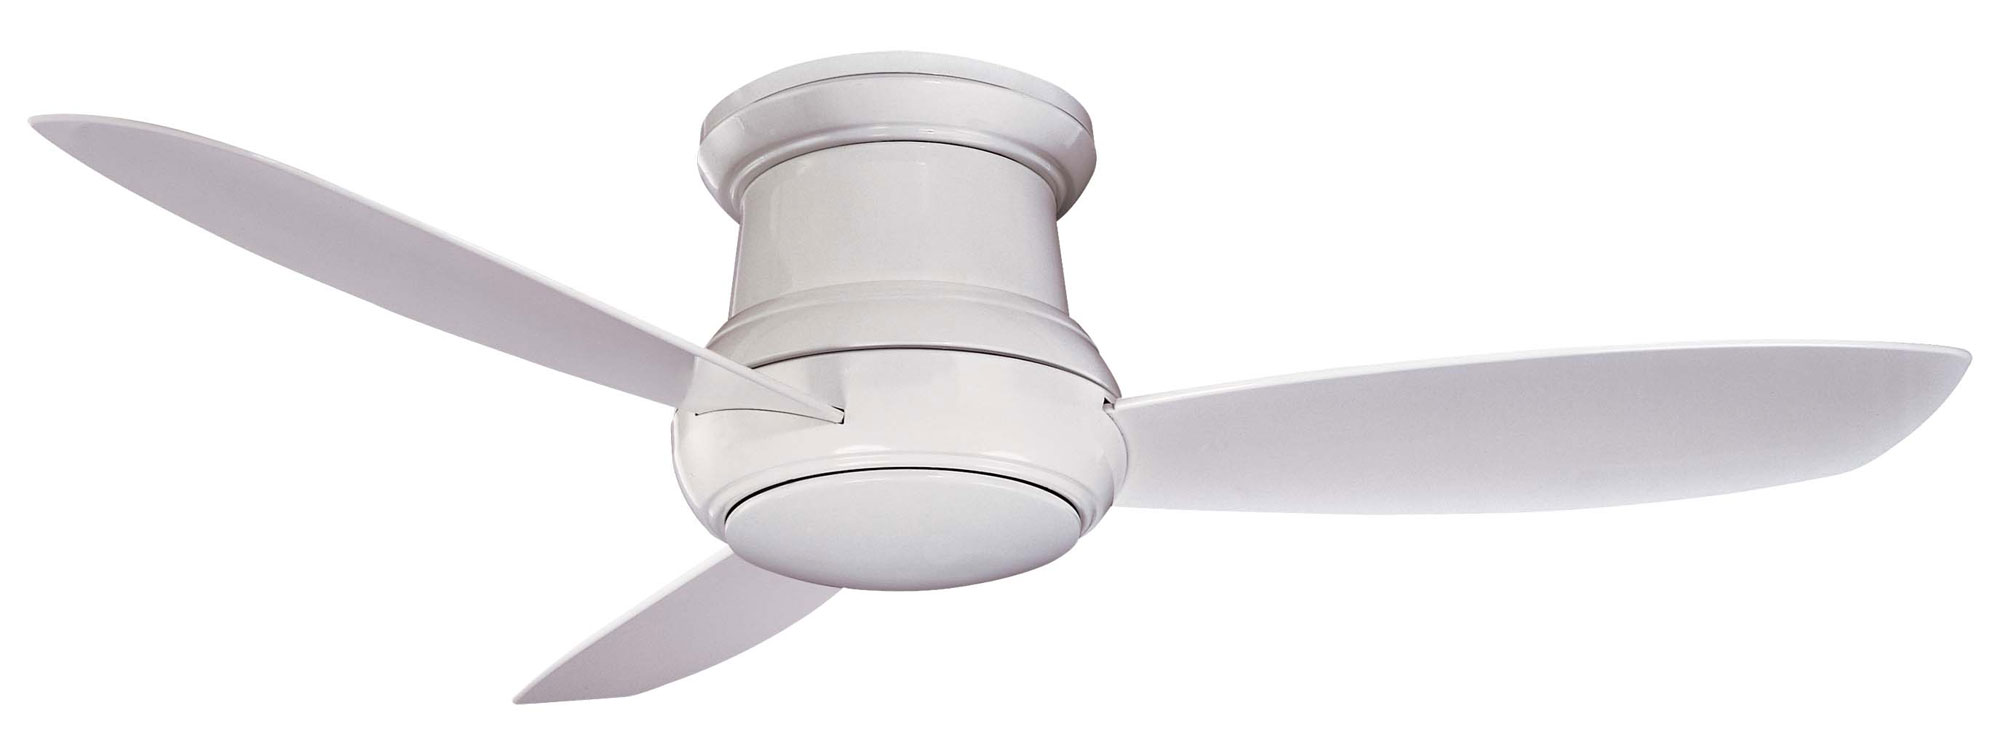 G squared art best ceiling fan for a low ceiling how to choose a the aloadofball Image collections